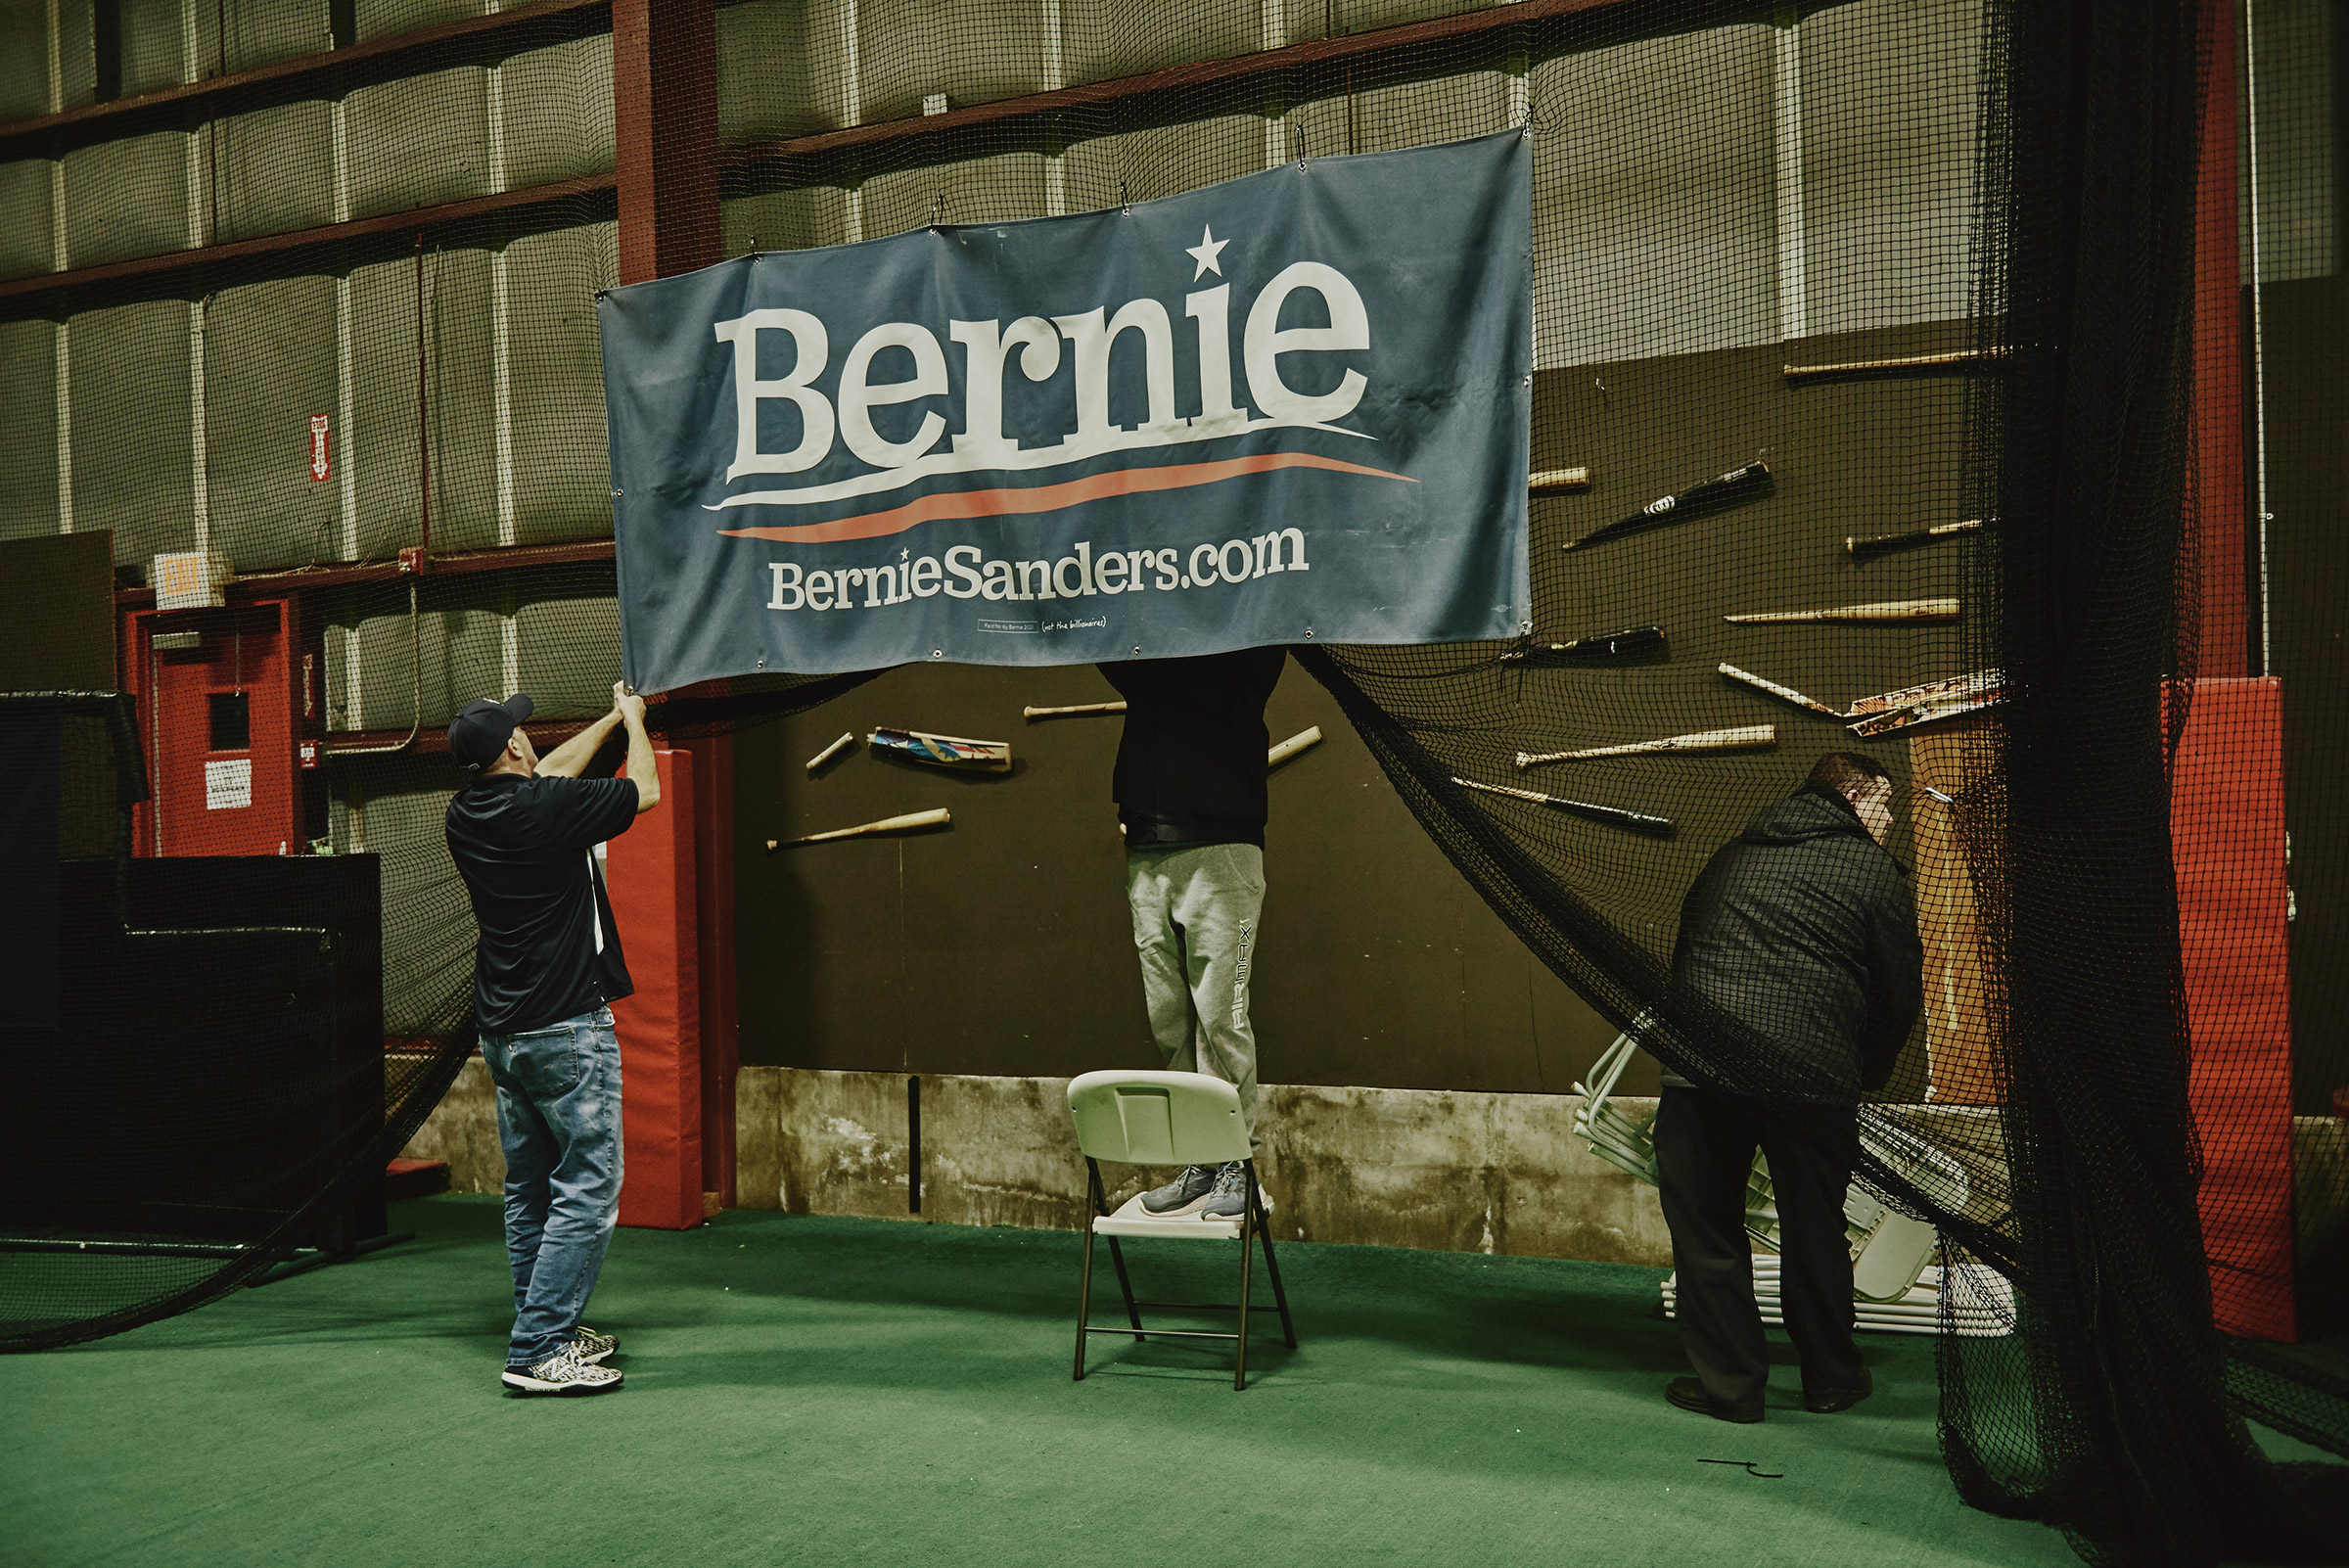 Workers clean up after the Bernie Sanders 2020 Debate Watch Party at the Ultimate Sports Academy in Manchester, N.H. on Feb. 7, 2020.